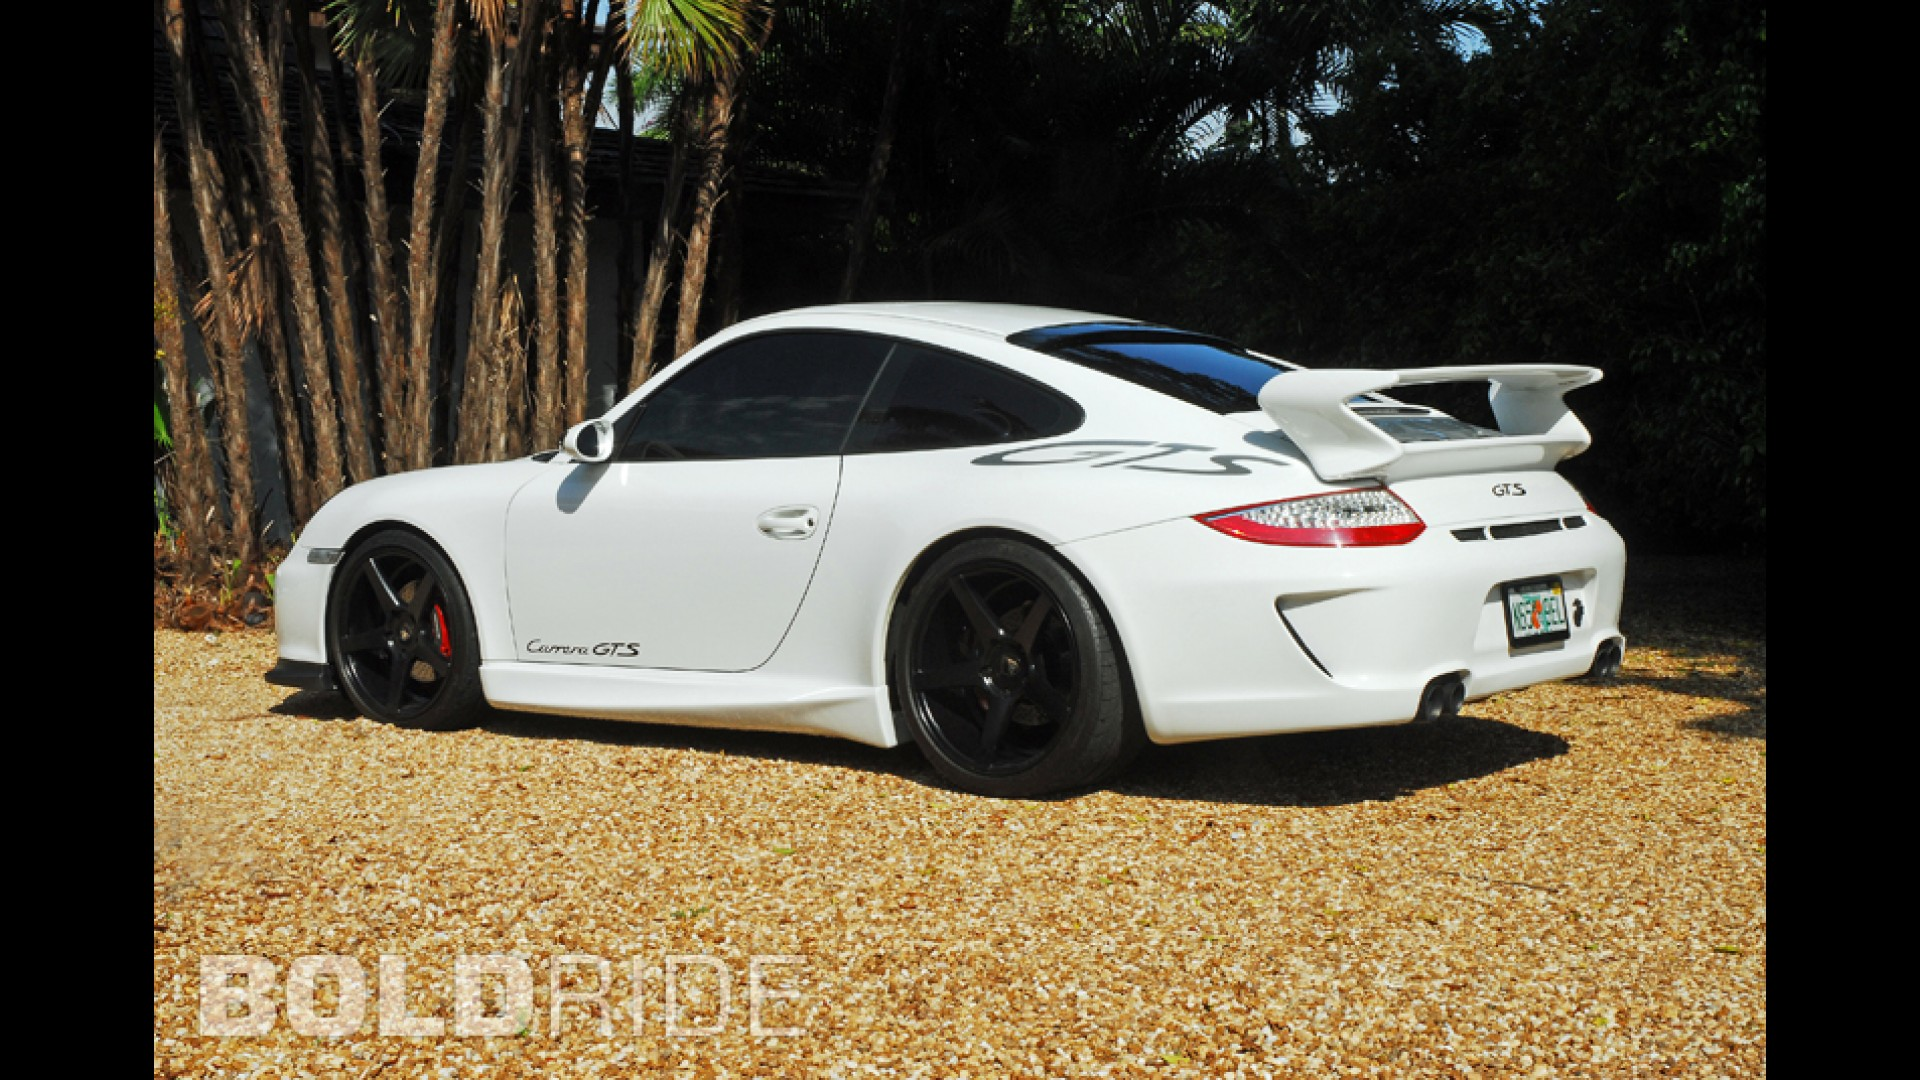 Porsche 911 Carrera GTS Paul Walker Tribute